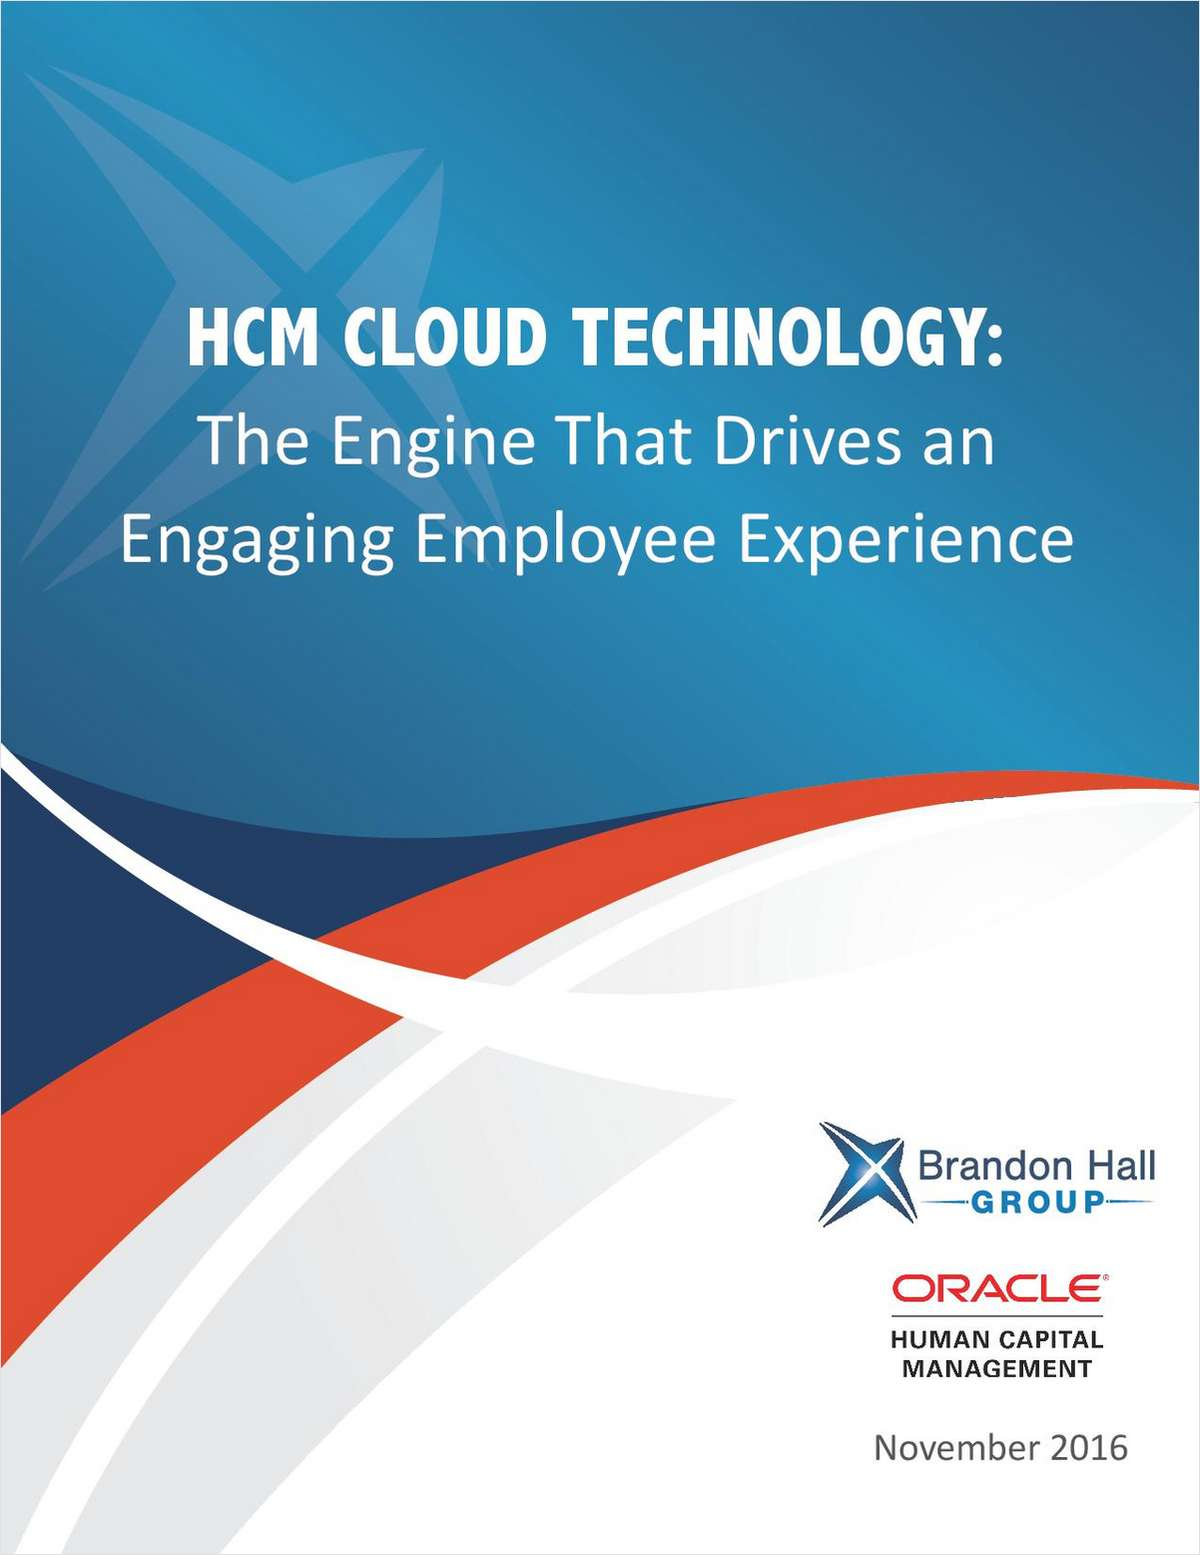 HCM CLOUD TECHNOLOGY: The Engine That Drives an Engaging Employee Experience